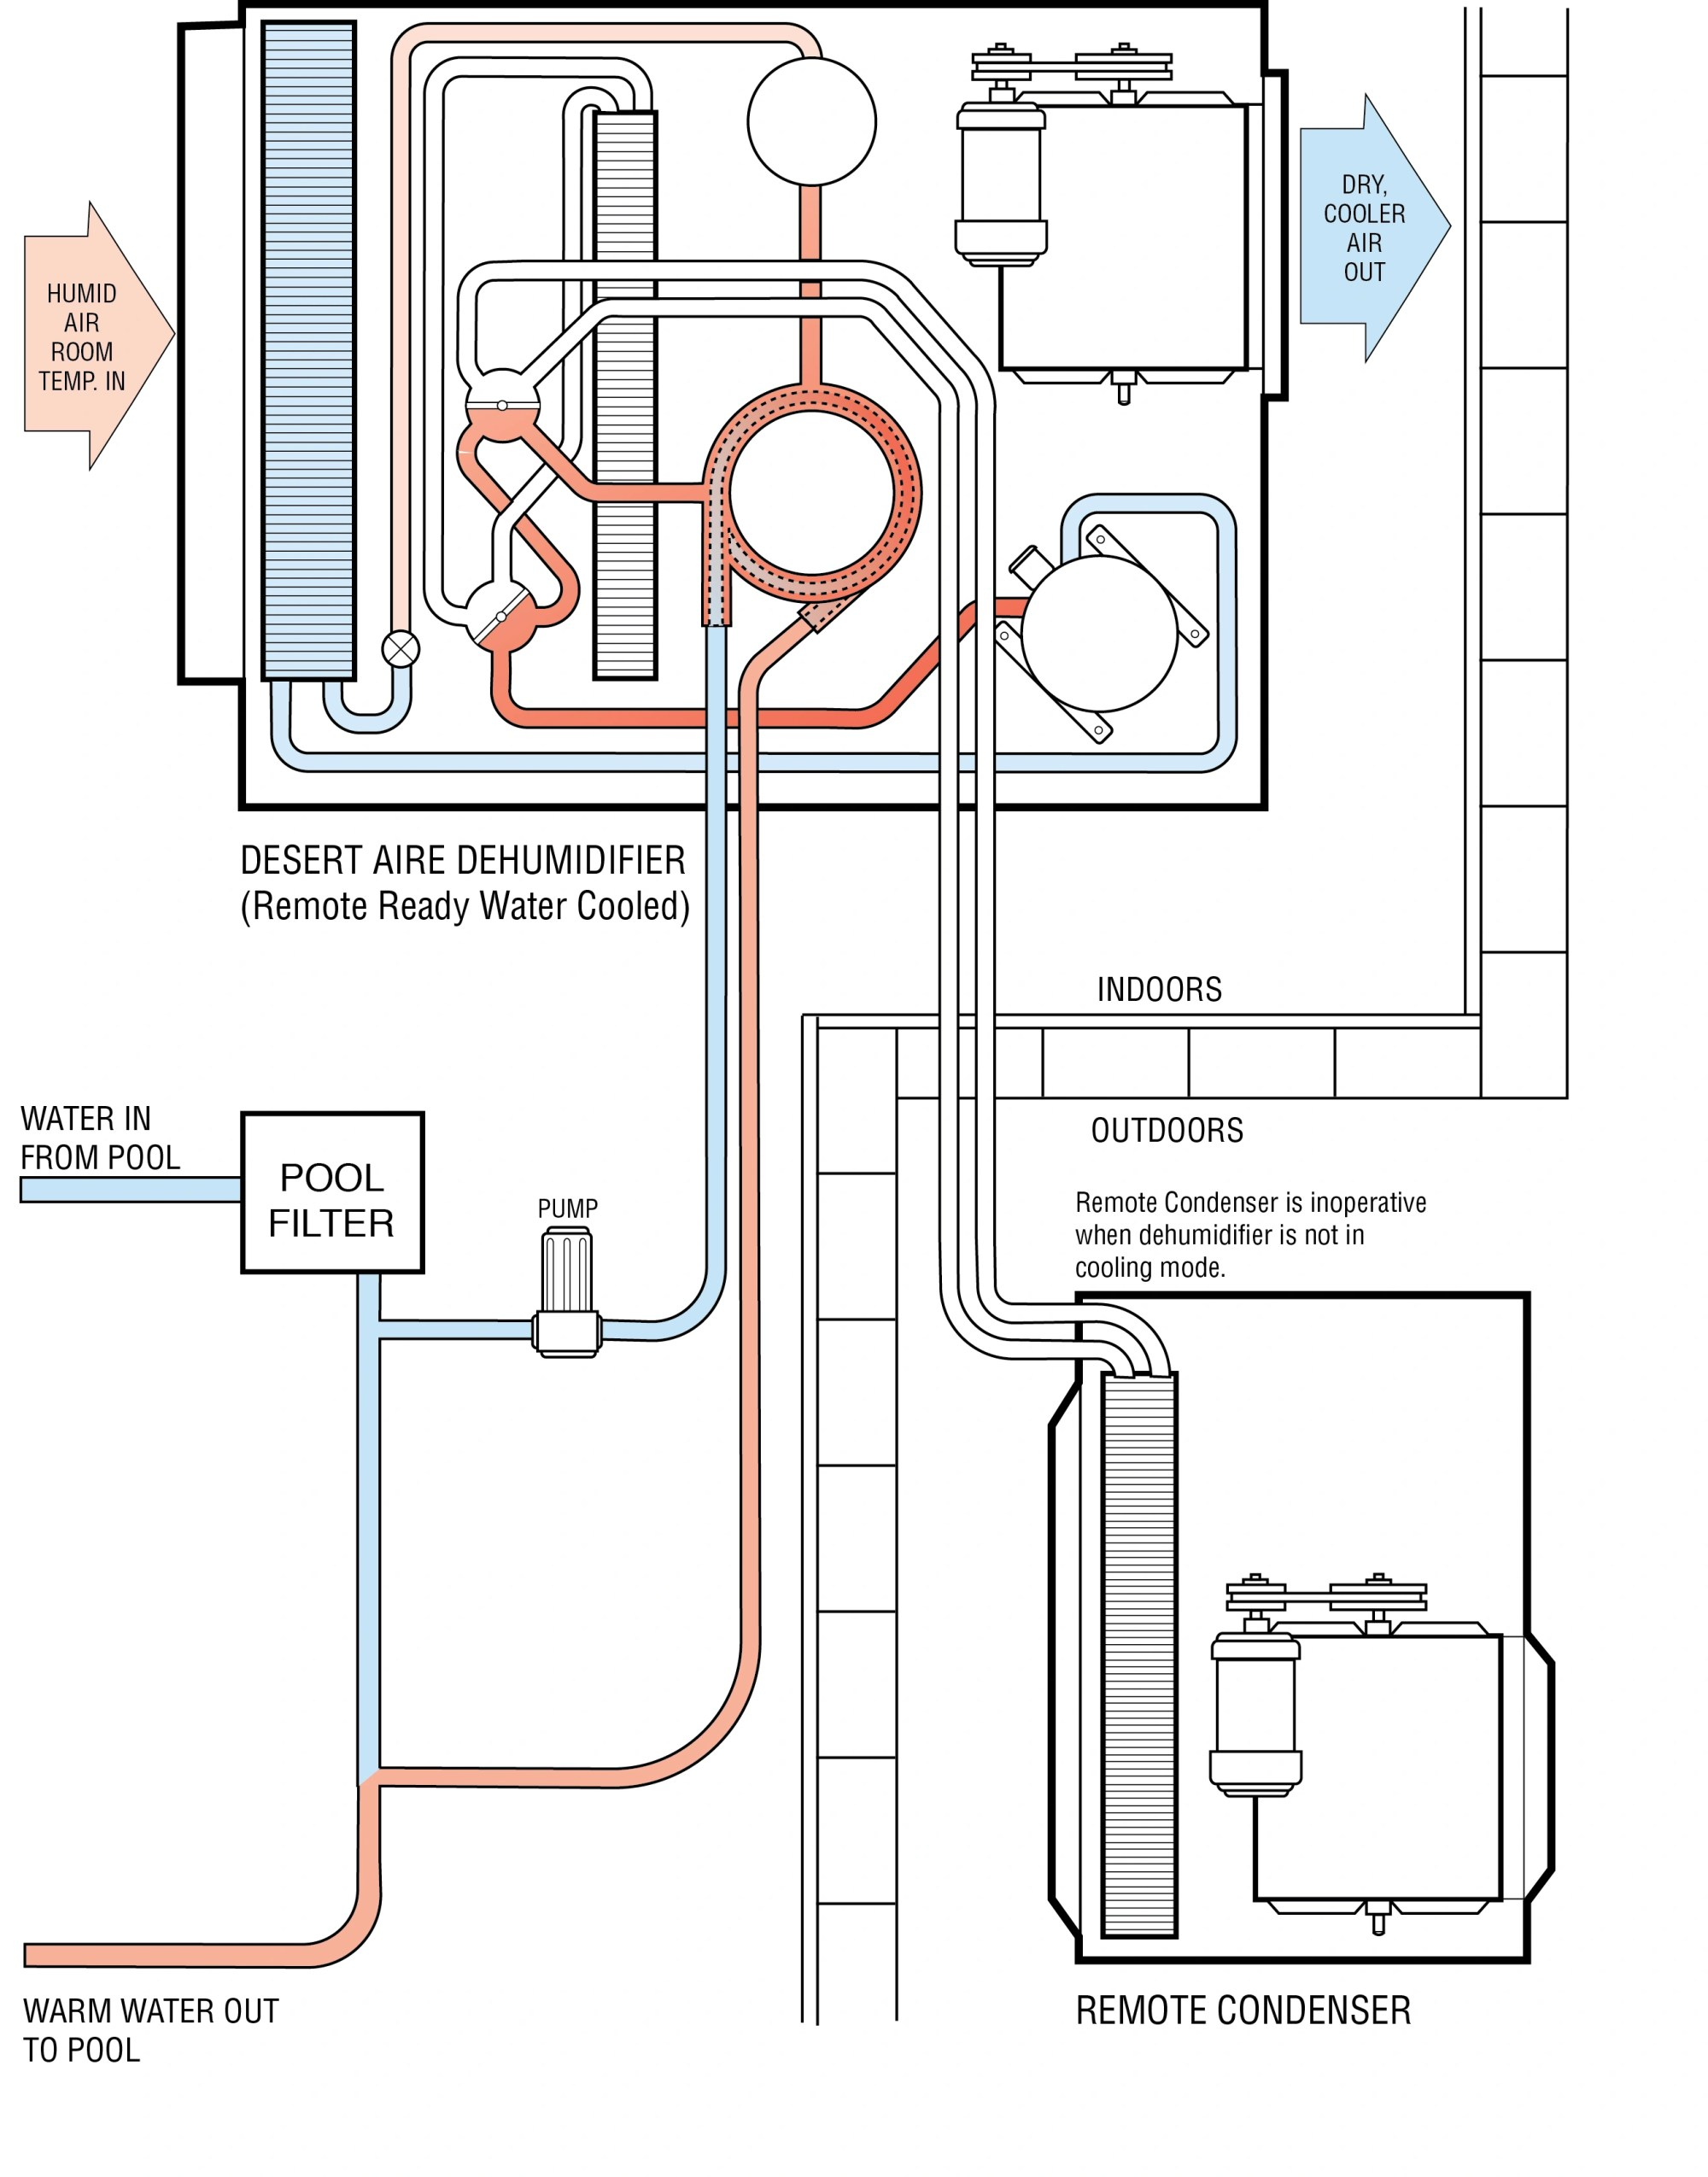 hight resolution of figure 6 water heating model with remote condenser in water heating mode